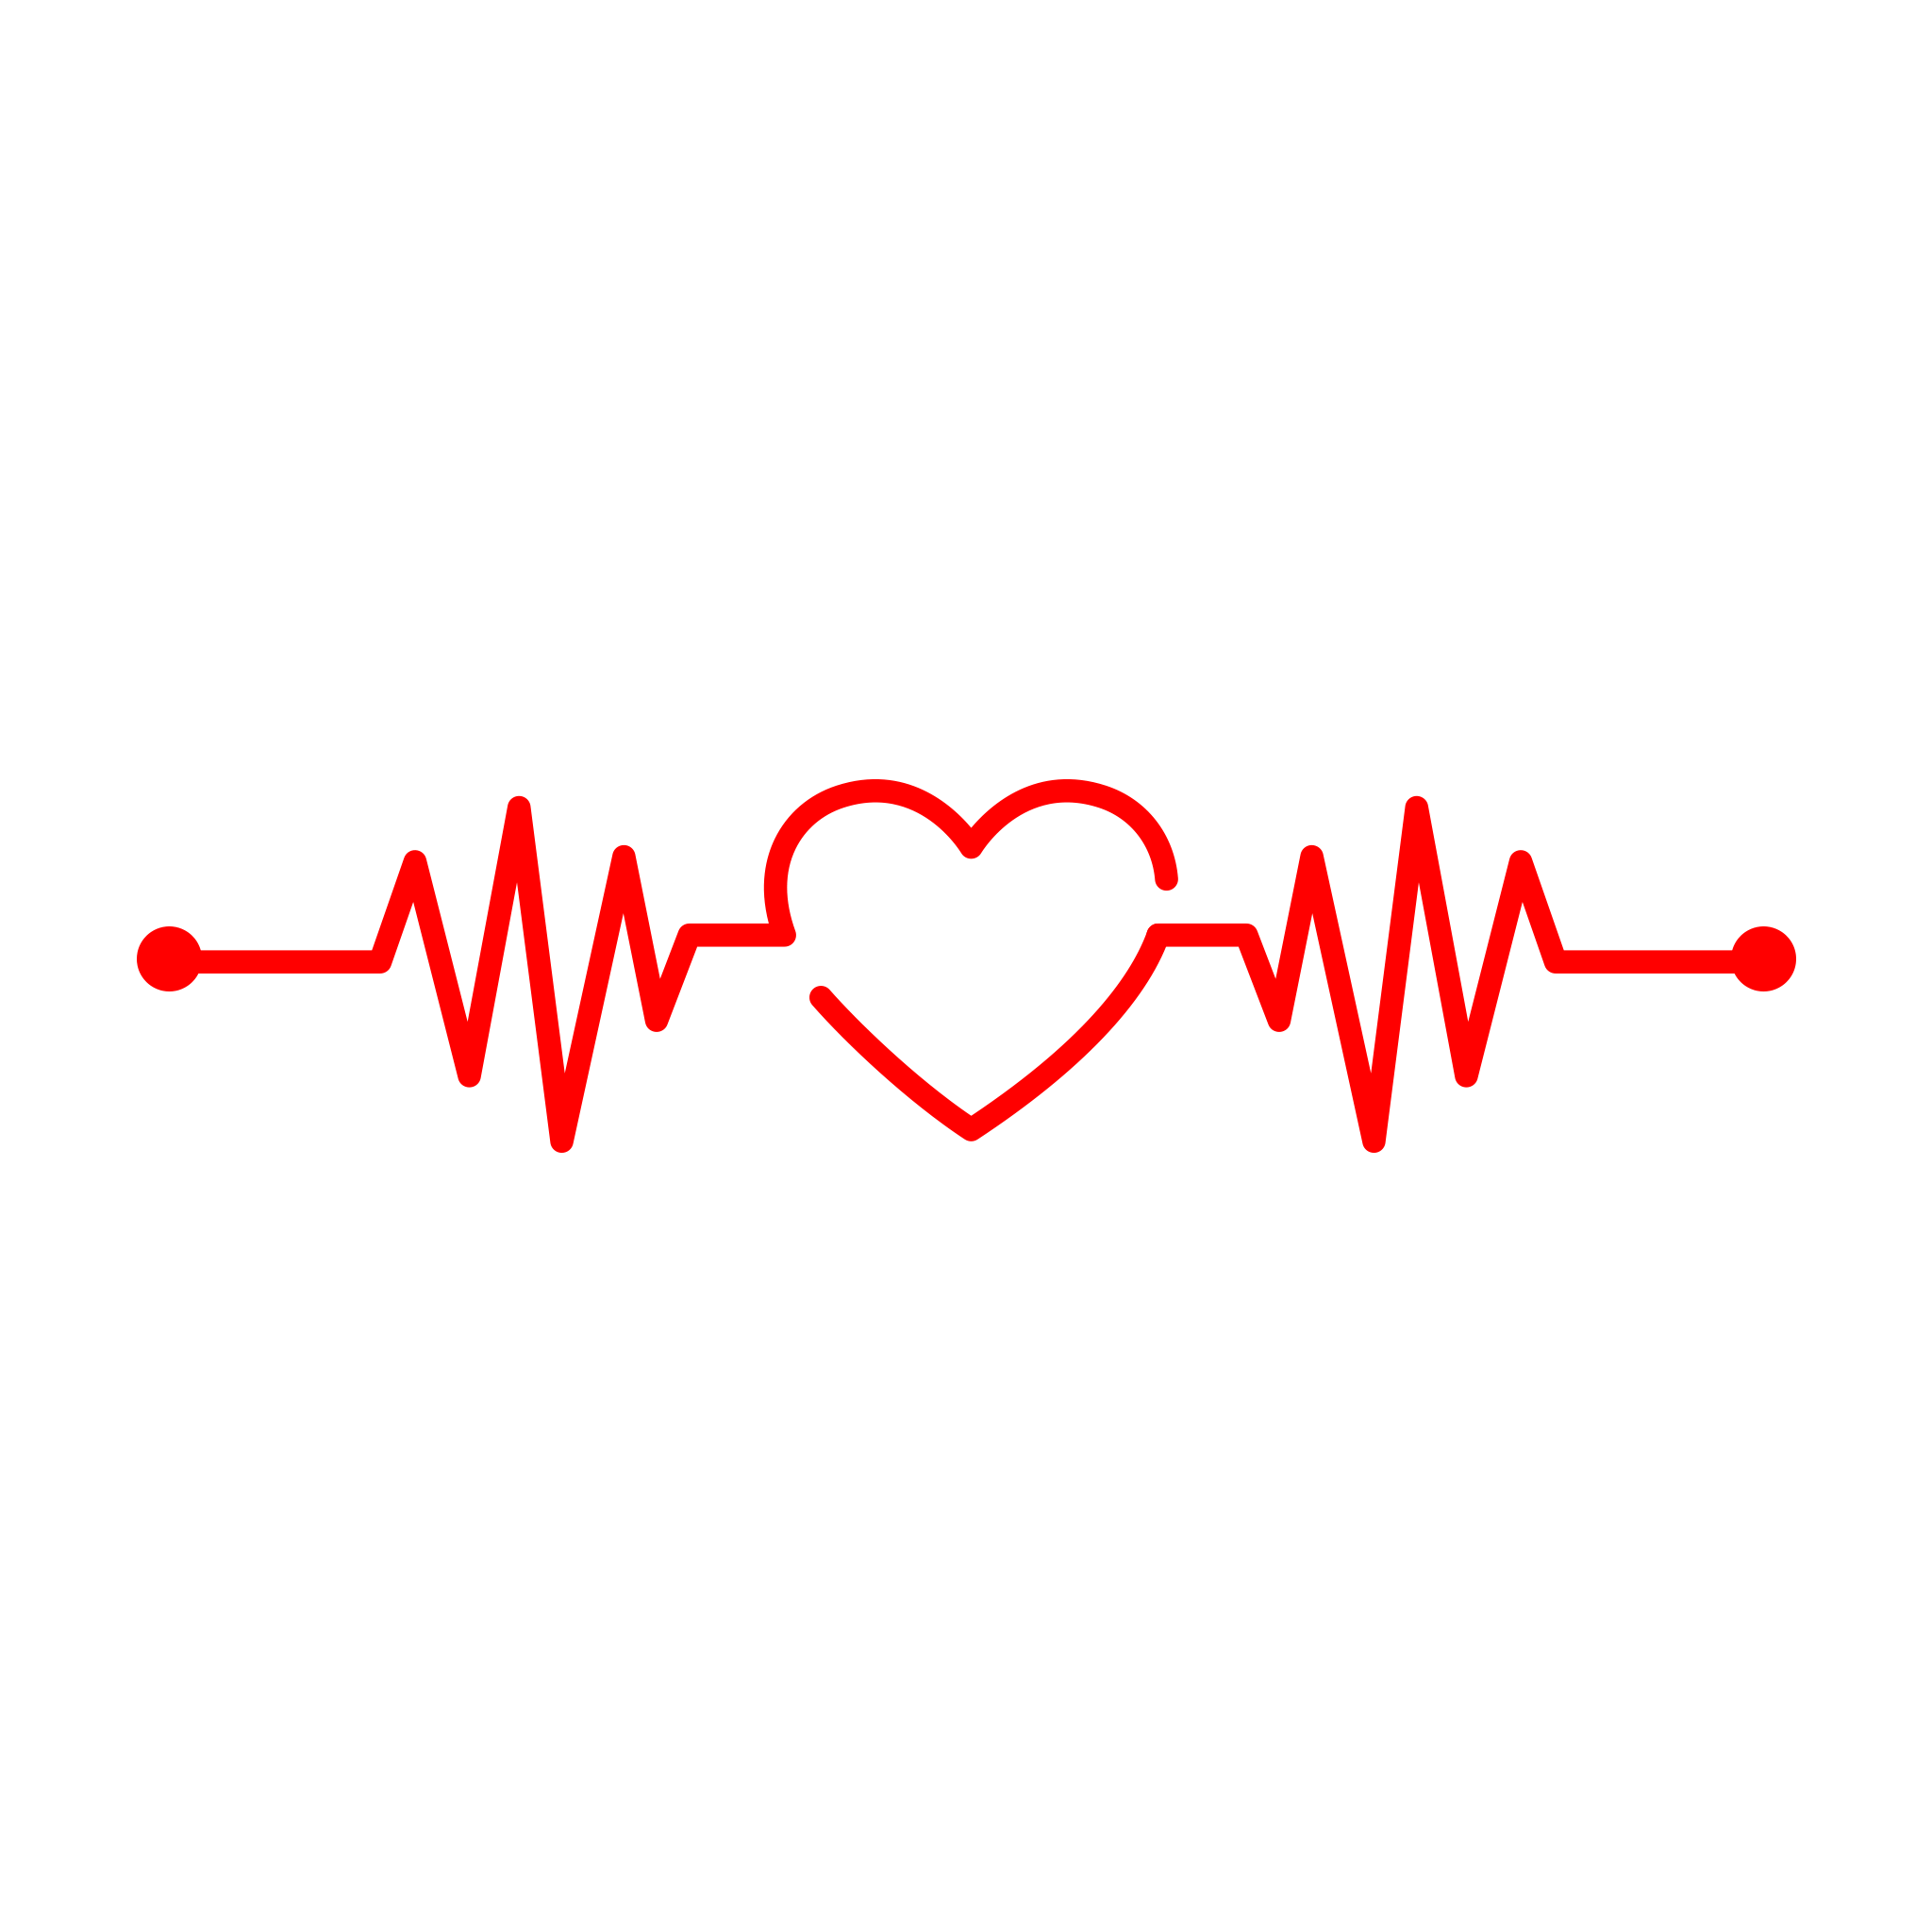 Https Www Searchpng Com Wp Content Uploads 2019 02 Heartbeat Line Png Image Png Heartbeat Line Png Images Png